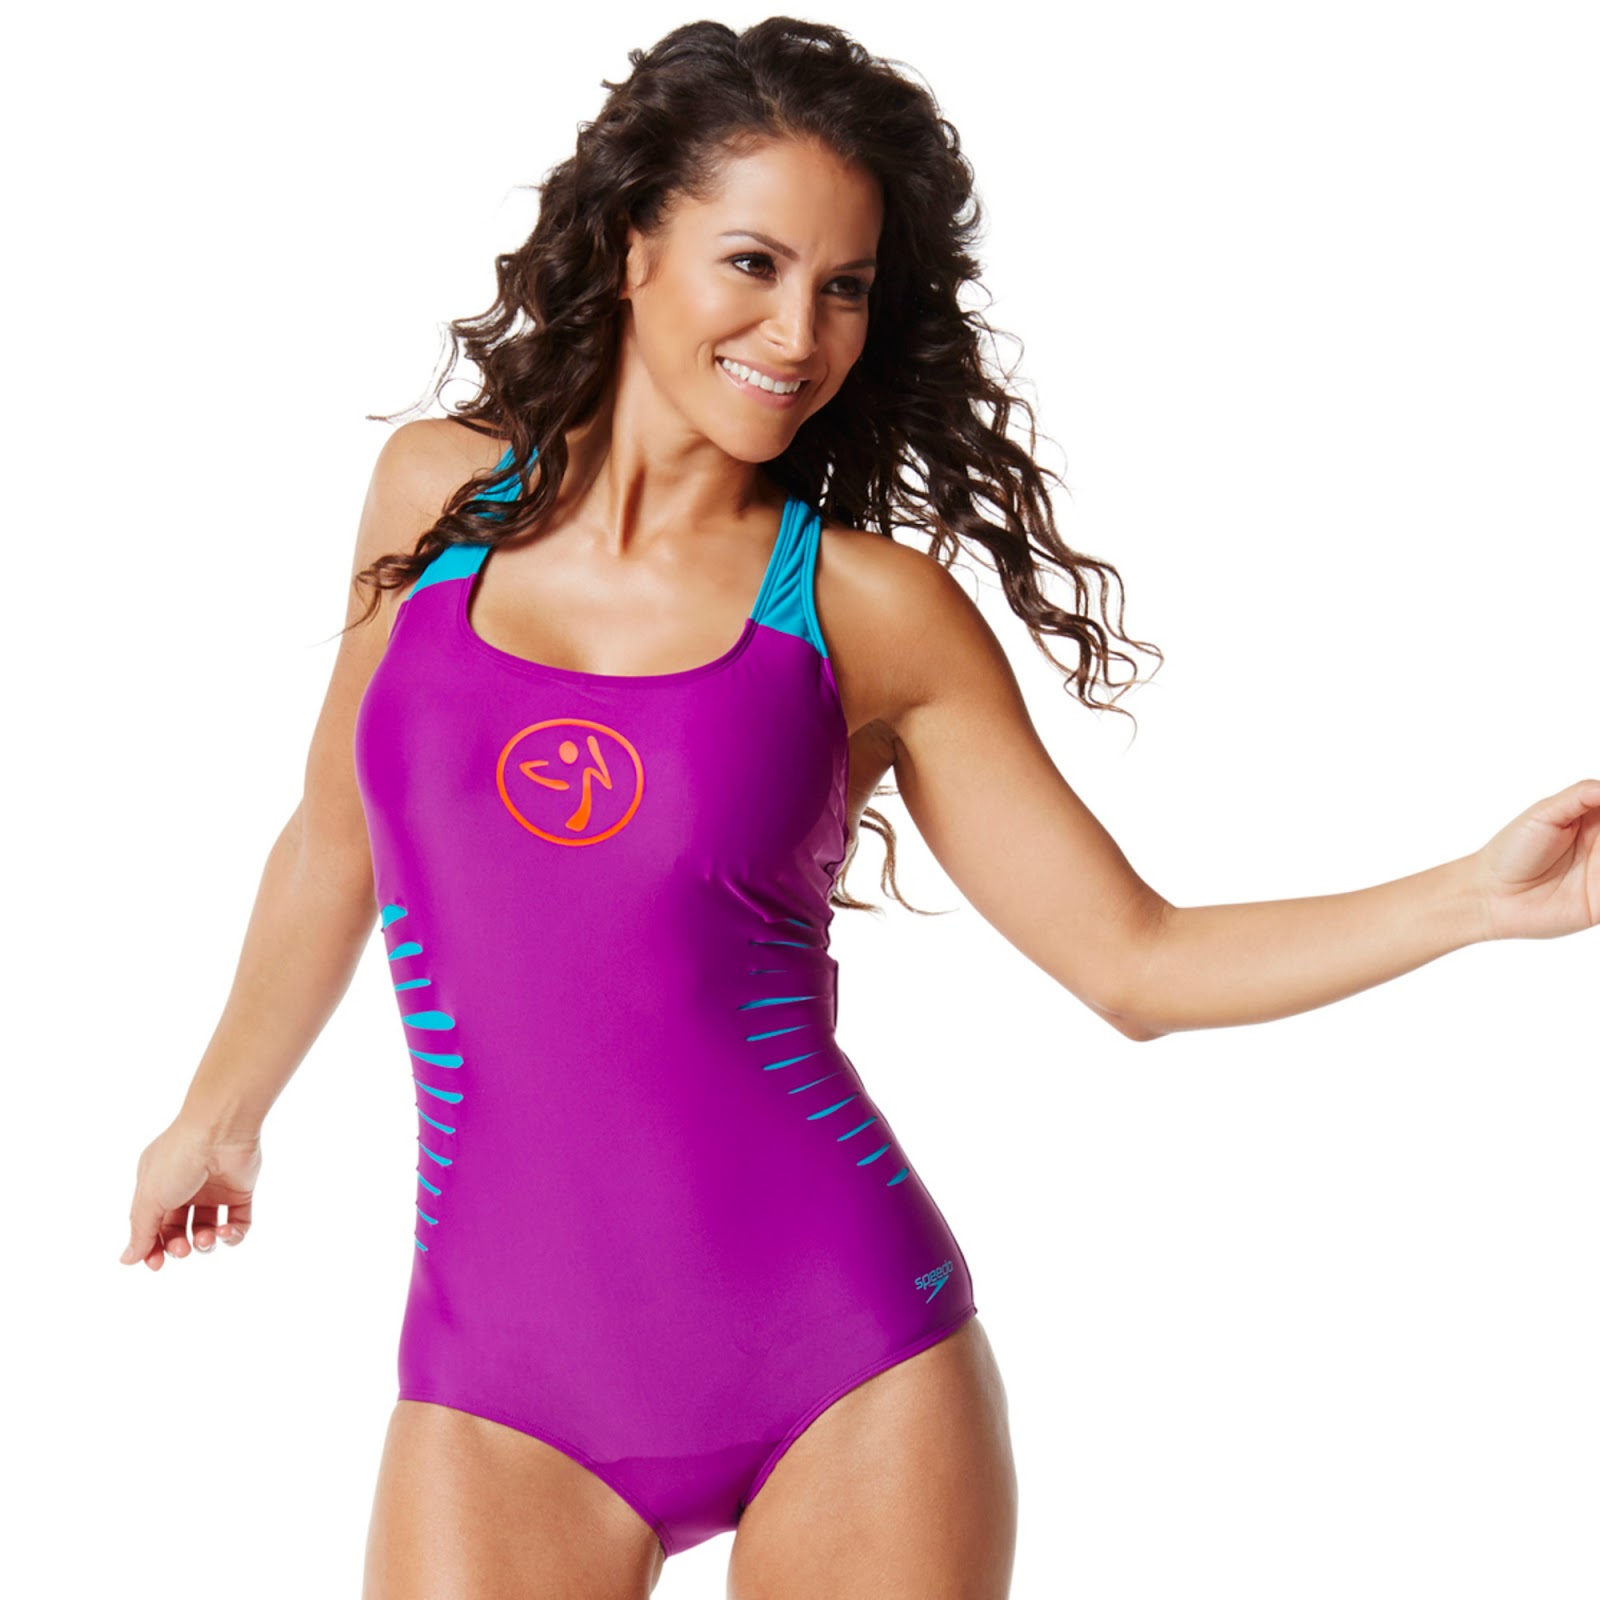 http://www.zumba.com/en-US/store-zin/US/product/slash-o-rama-ultraback-one-piece?color=Vivid%20Violet